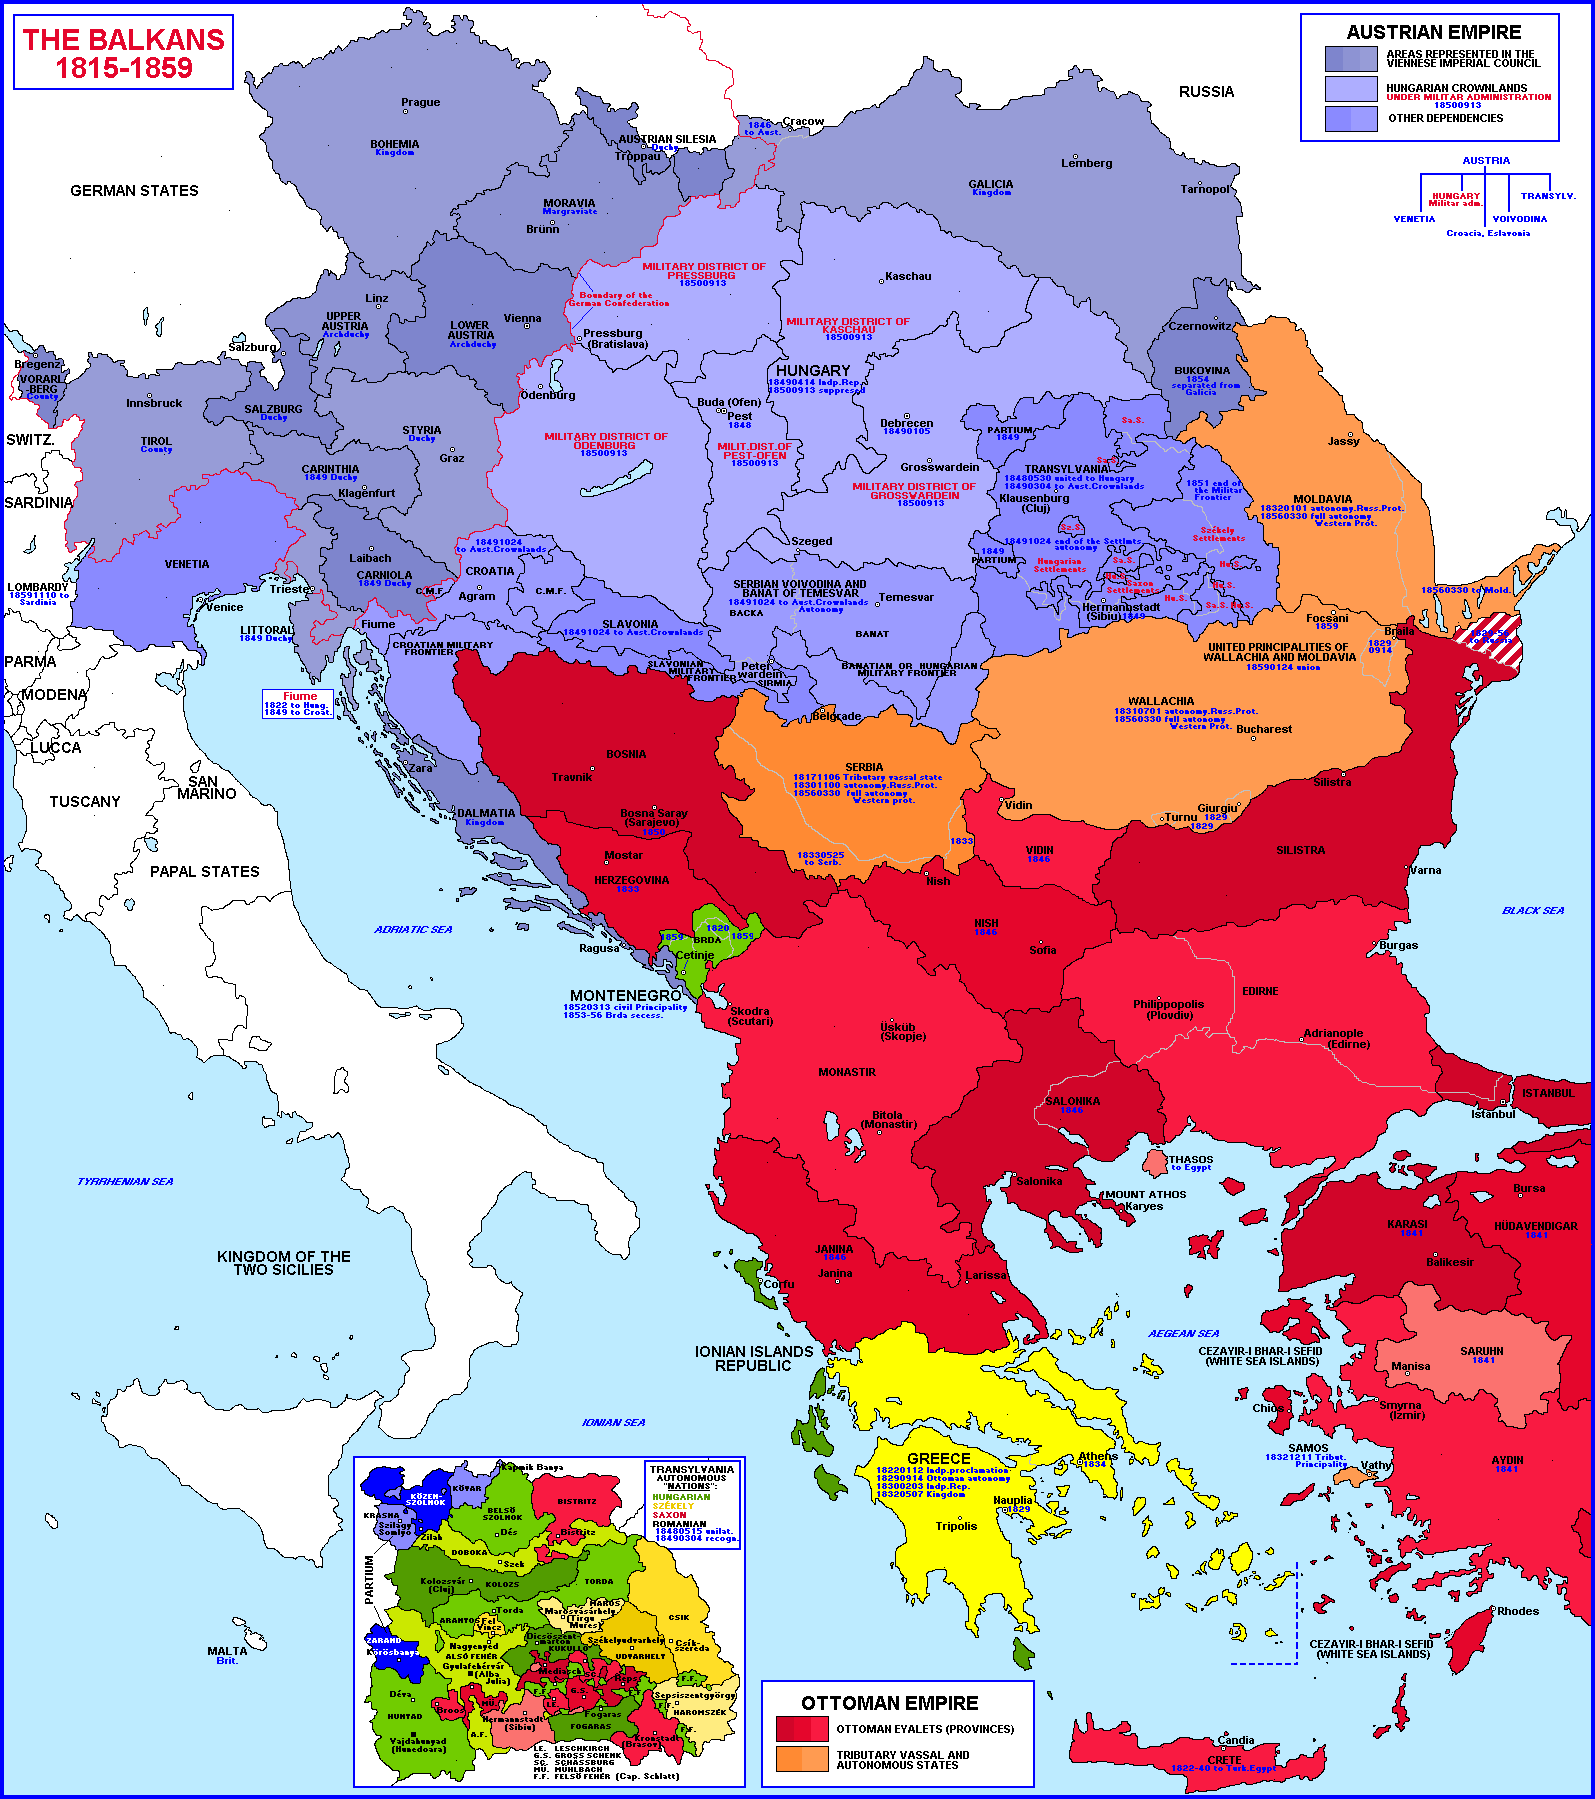 balkans historical map 1815 1859 balkans maps european historyworld